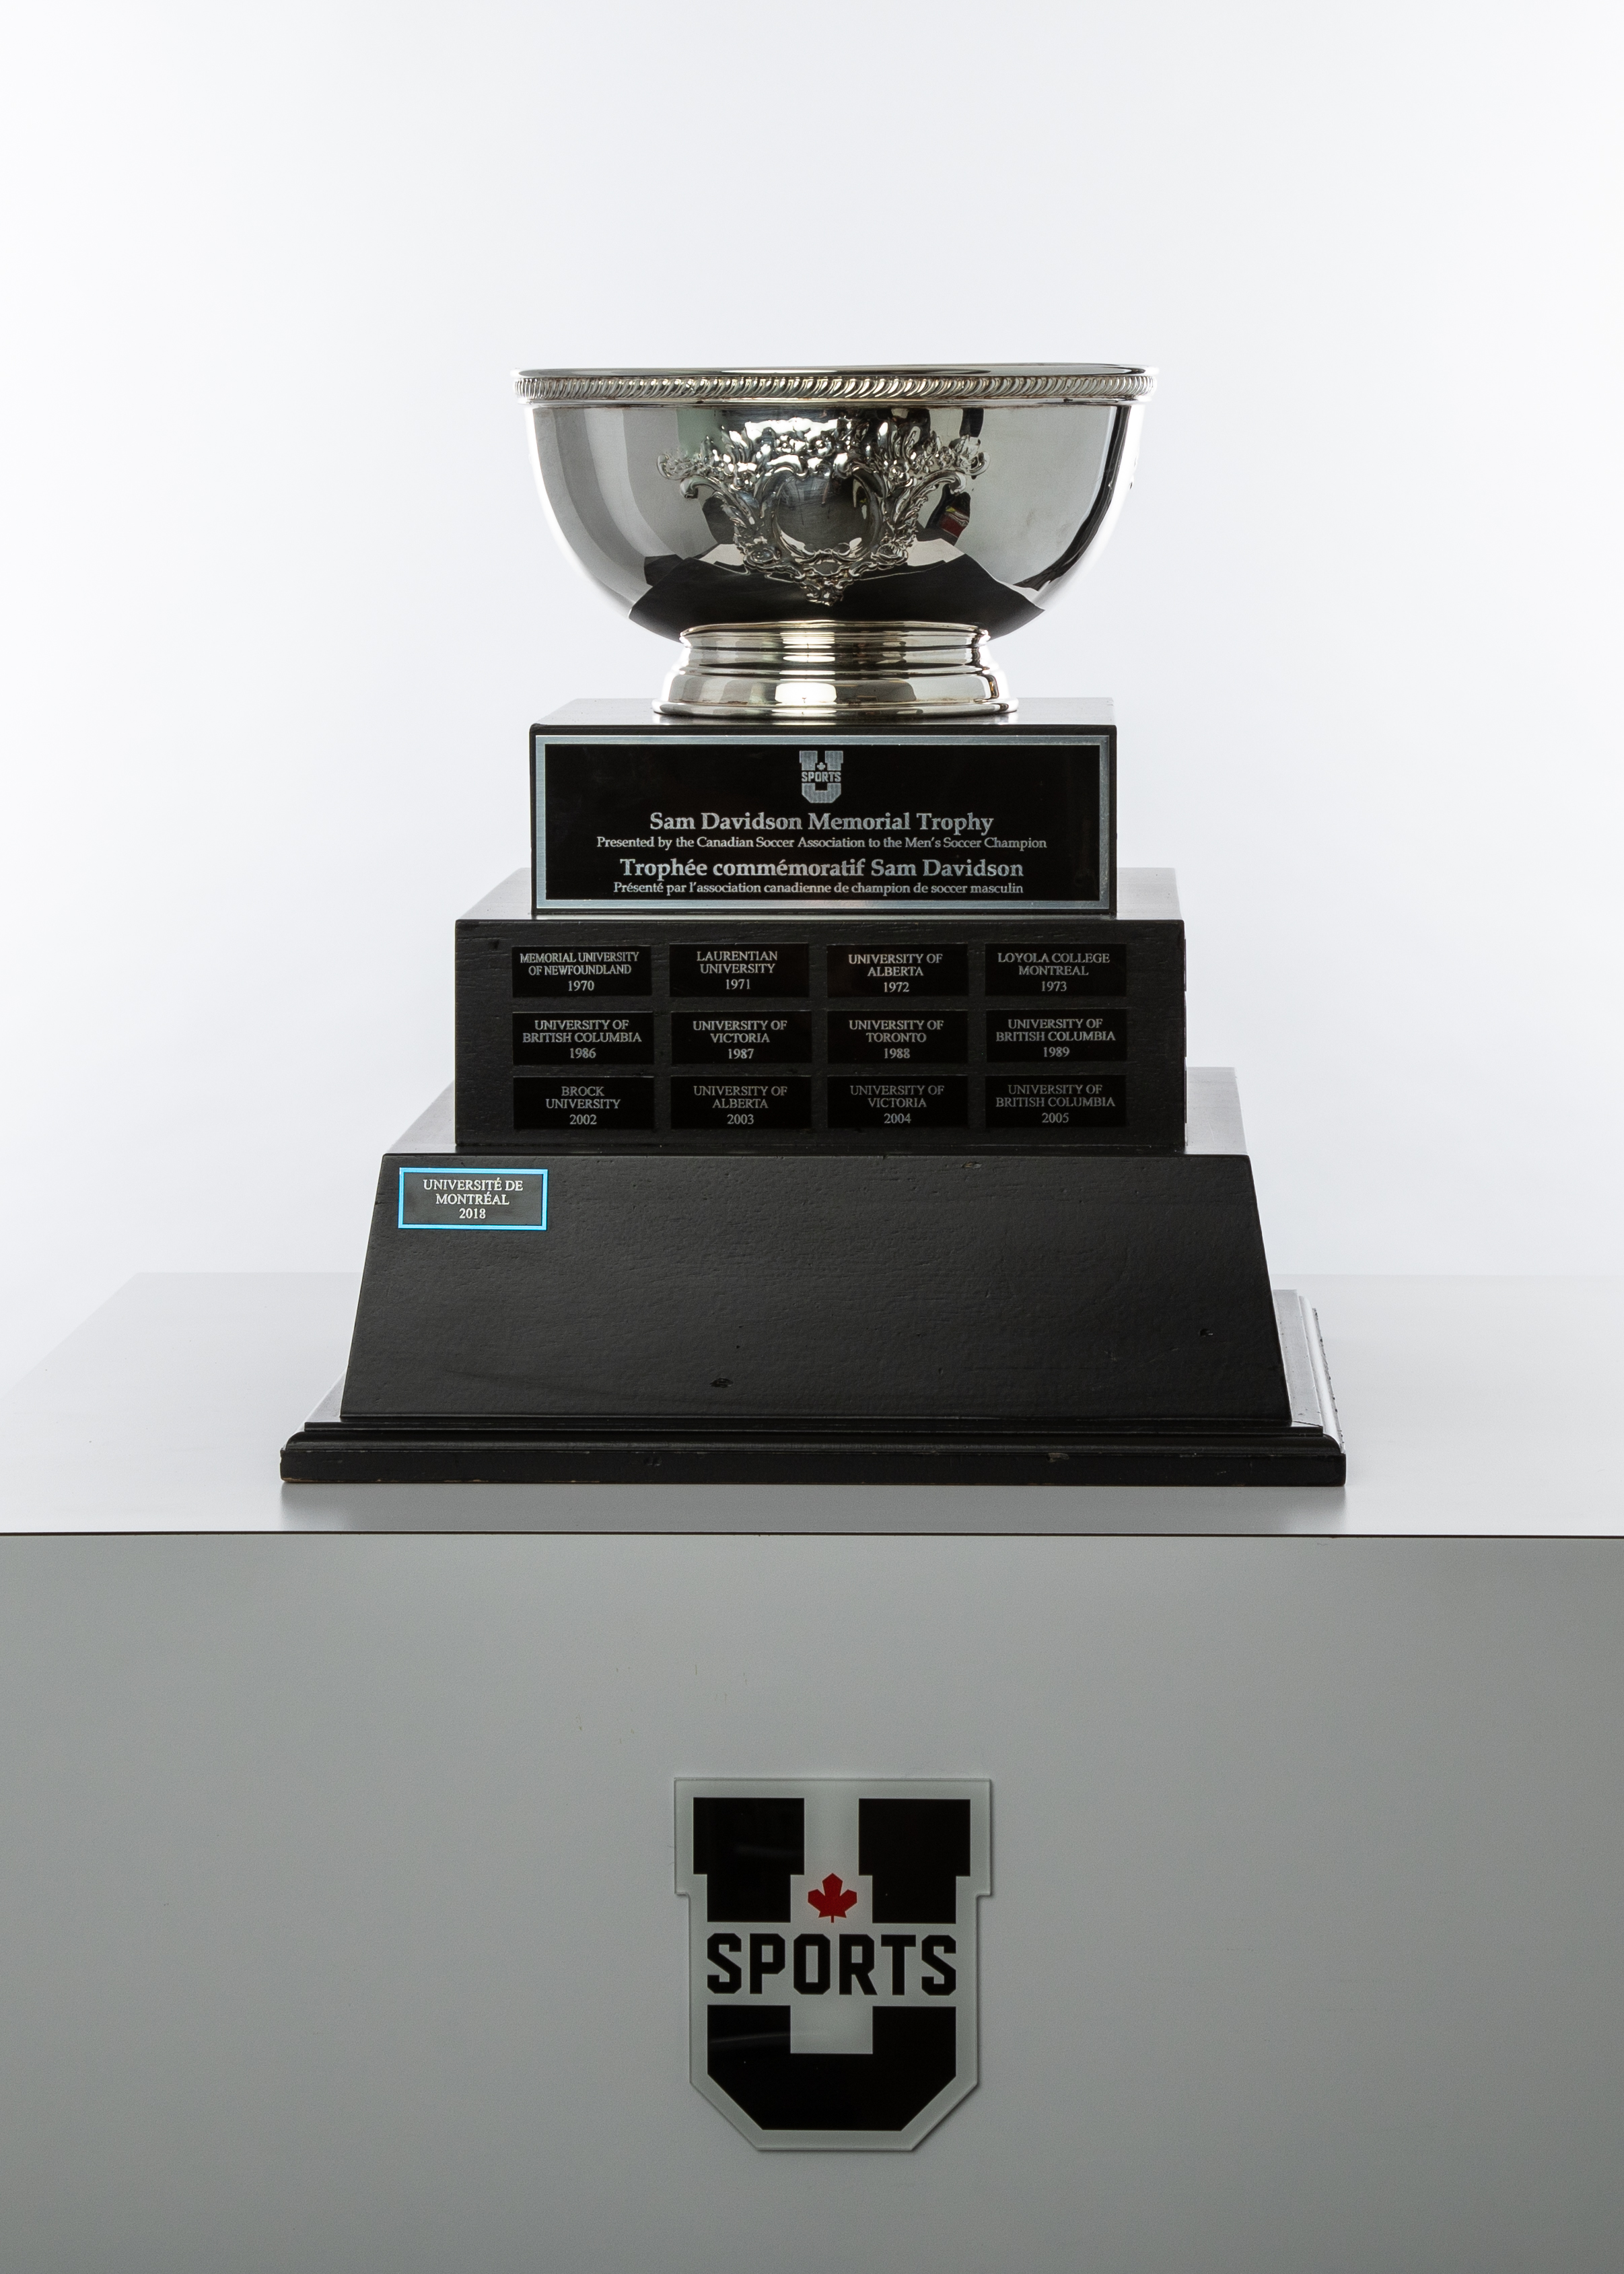 Sam_Davidson_Memorial_Trophy-_Front.jpg (2.79 MB)